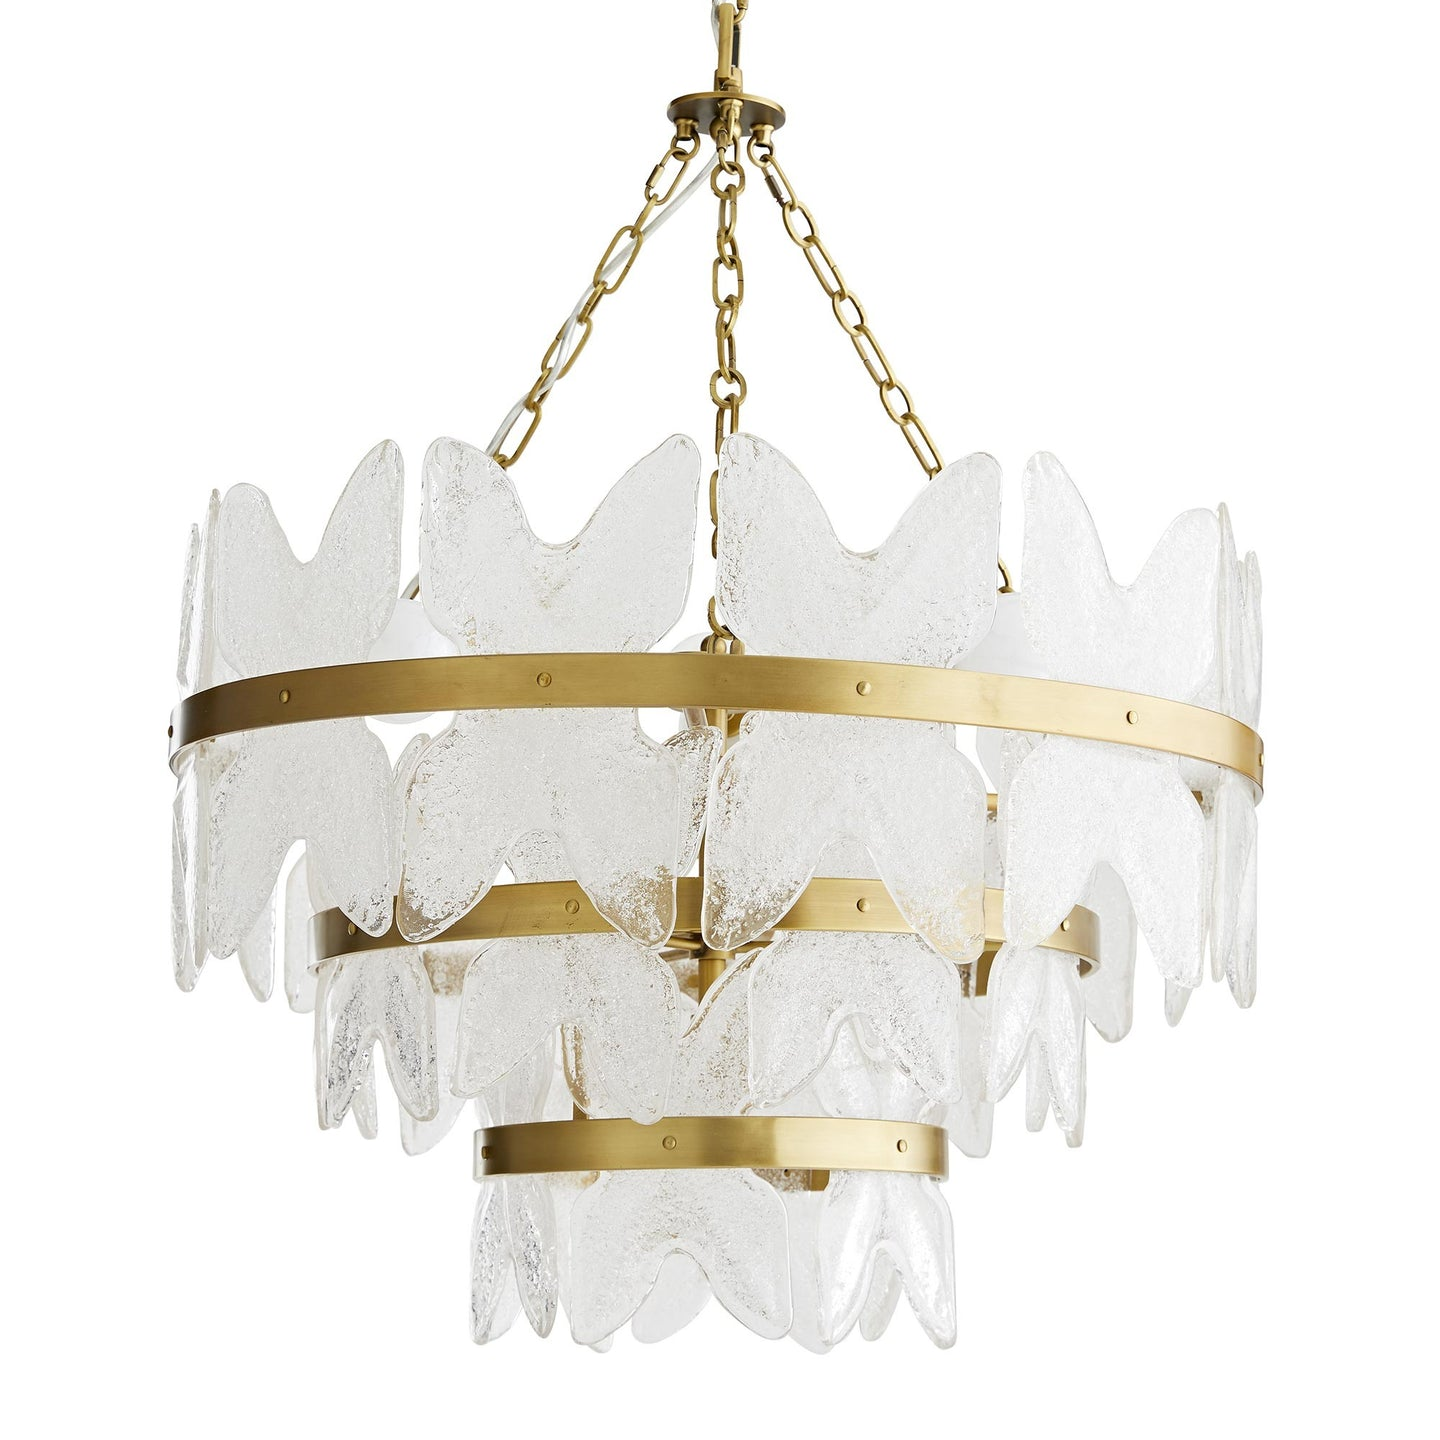 Millie Seeded Glass Luxury Chandelier